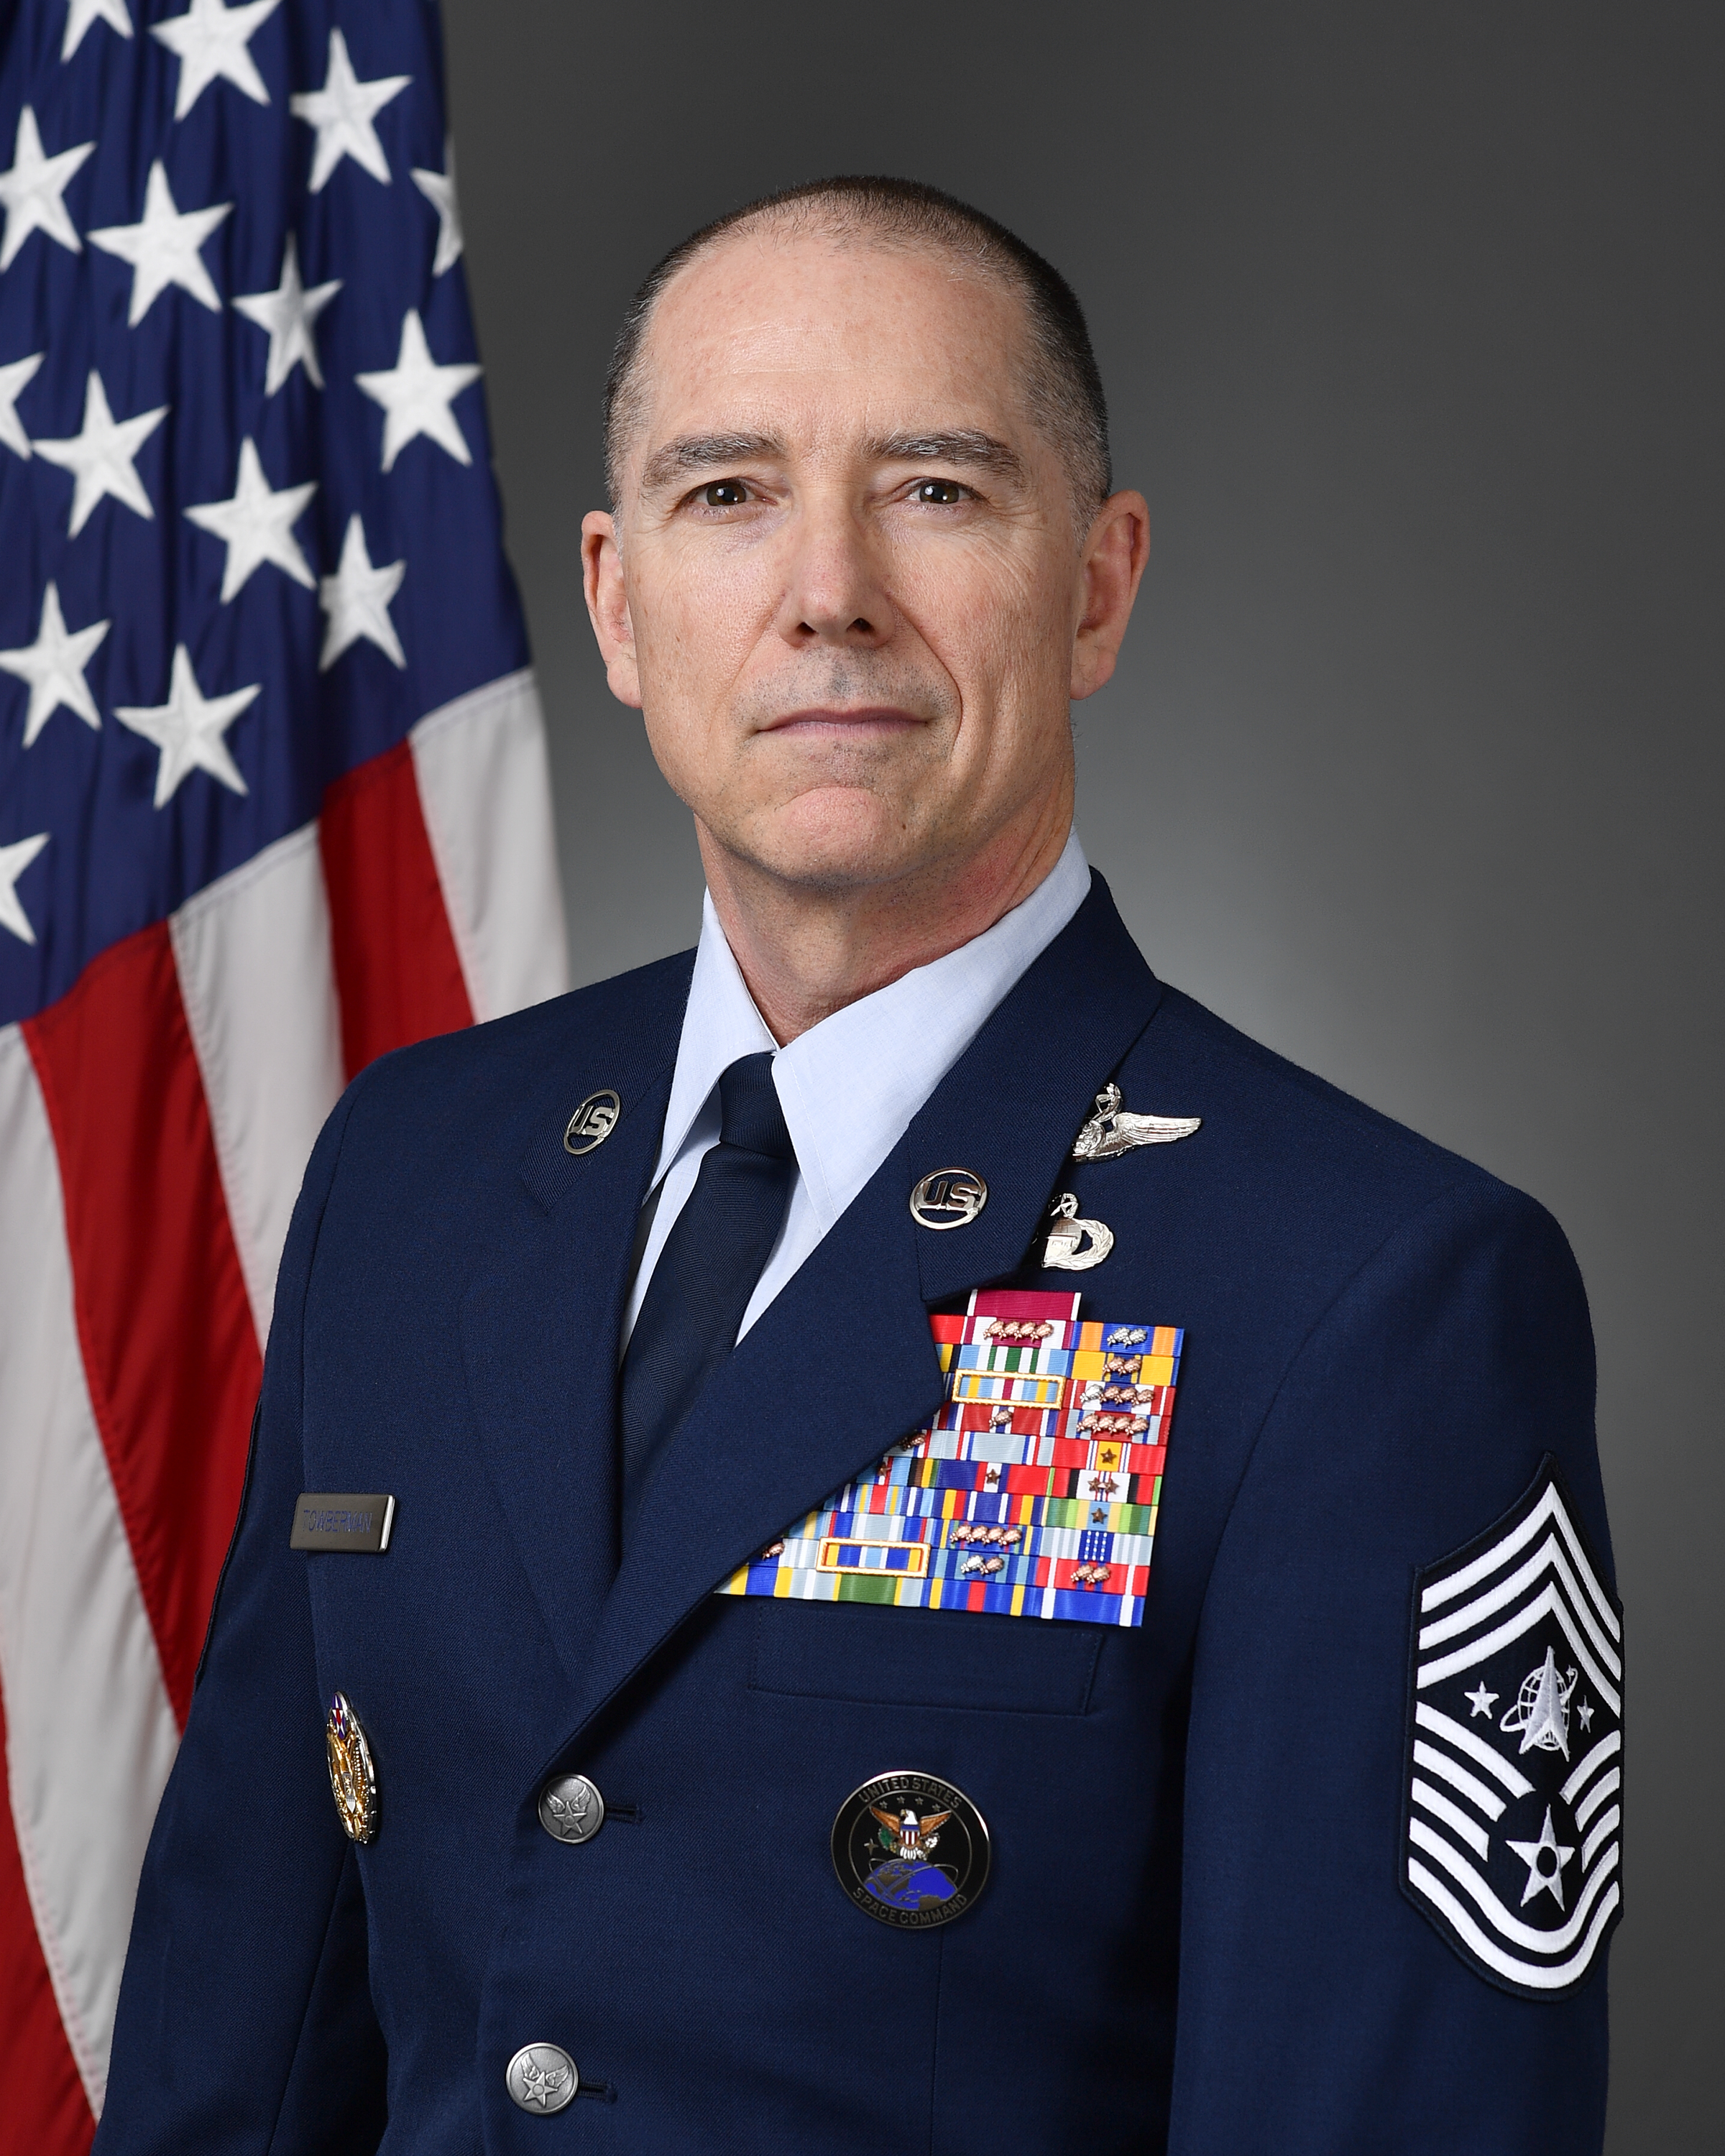 Chief Master Sergeant Roger Towberman Biography Photo